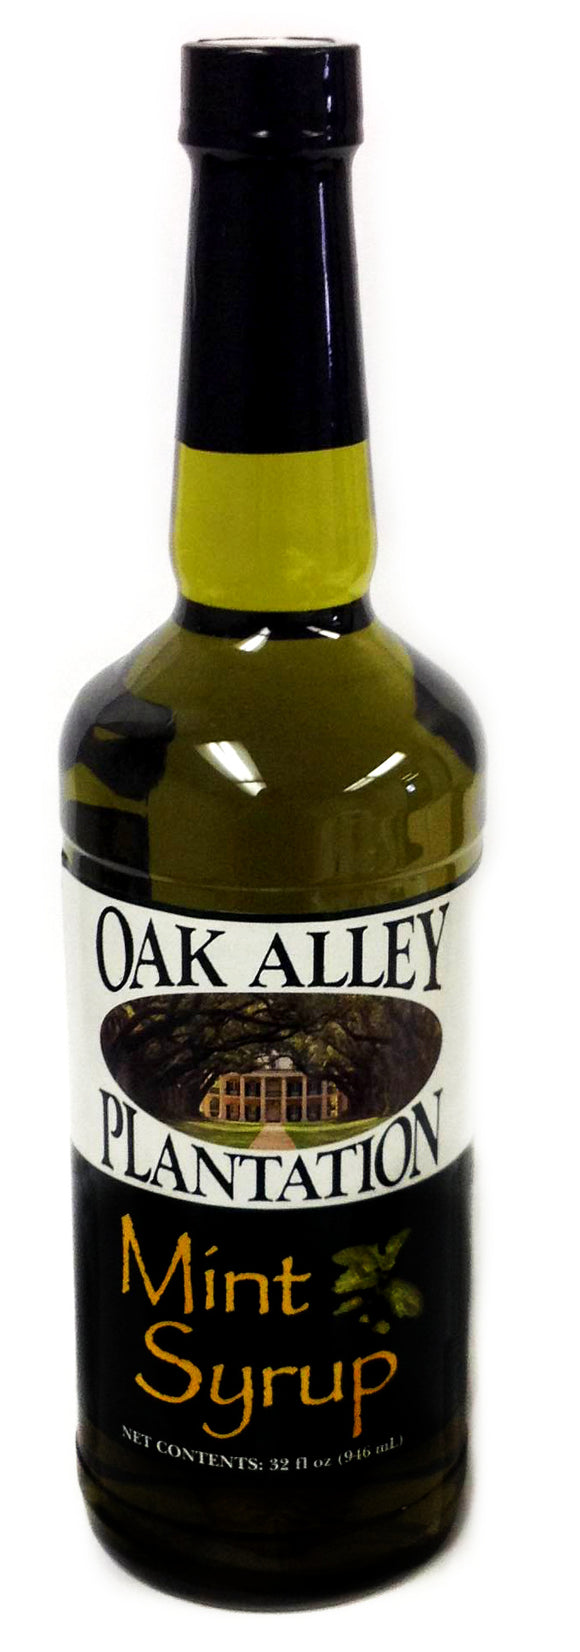 Oak Alley Plantation Mint Syrup